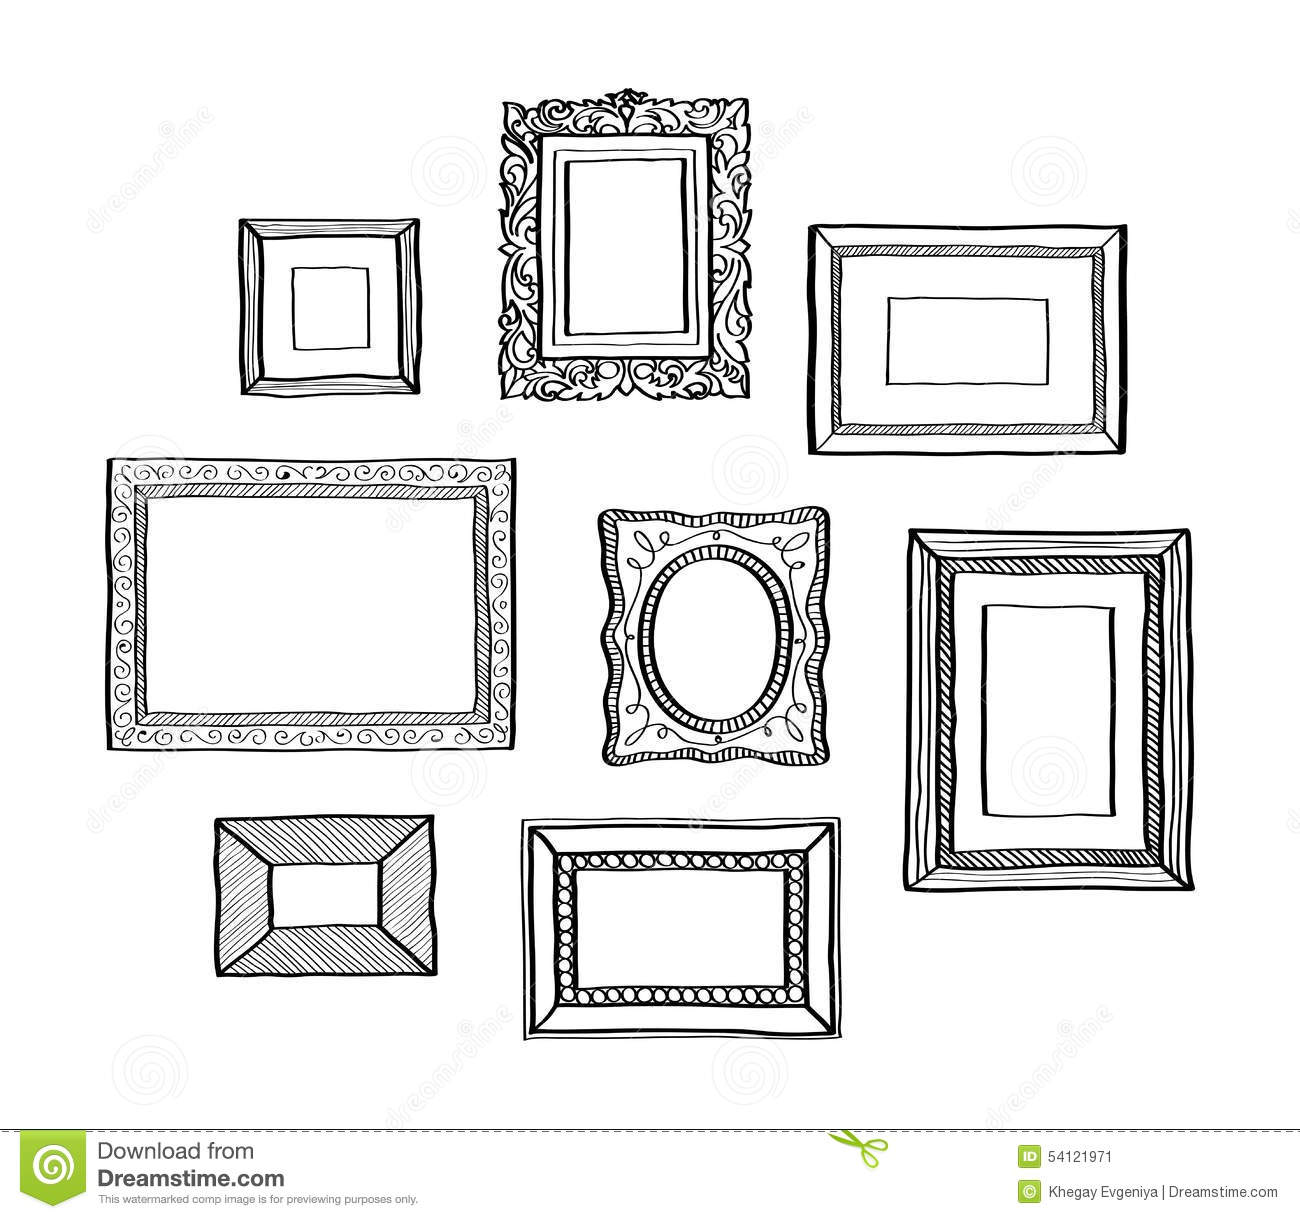 vector set of vintage photo frames hand drawn doodle style antique ornamental and cute photo. Black Bedroom Furniture Sets. Home Design Ideas